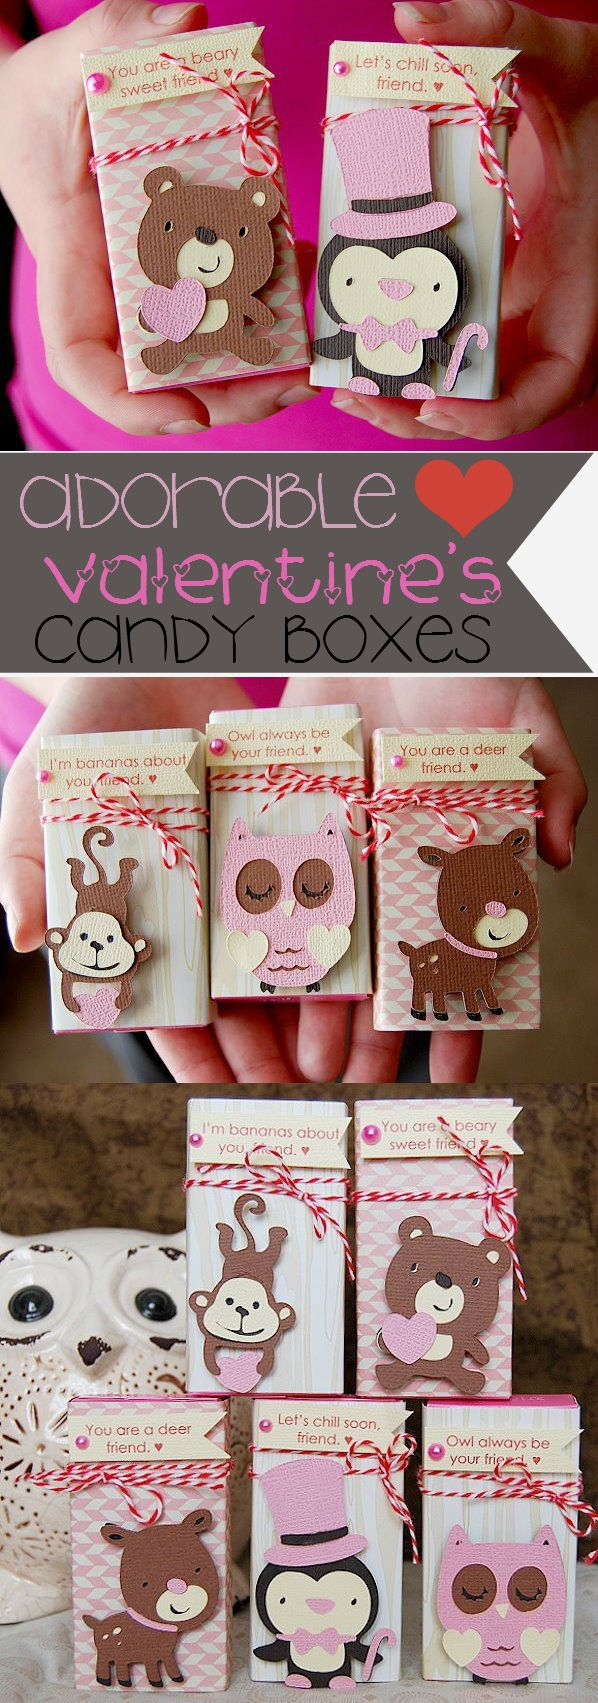 http://creativemeinspiredyou.com/cute-conversation-heart-box-wraps/  Valentine's, Valentine, Valentine's Day, love, conversation, conversation hearts, hearts, love, kids, kids crafts, kids craft, class, party,gifts, crafty, wraps, boxes, diy, handmade, homemade.